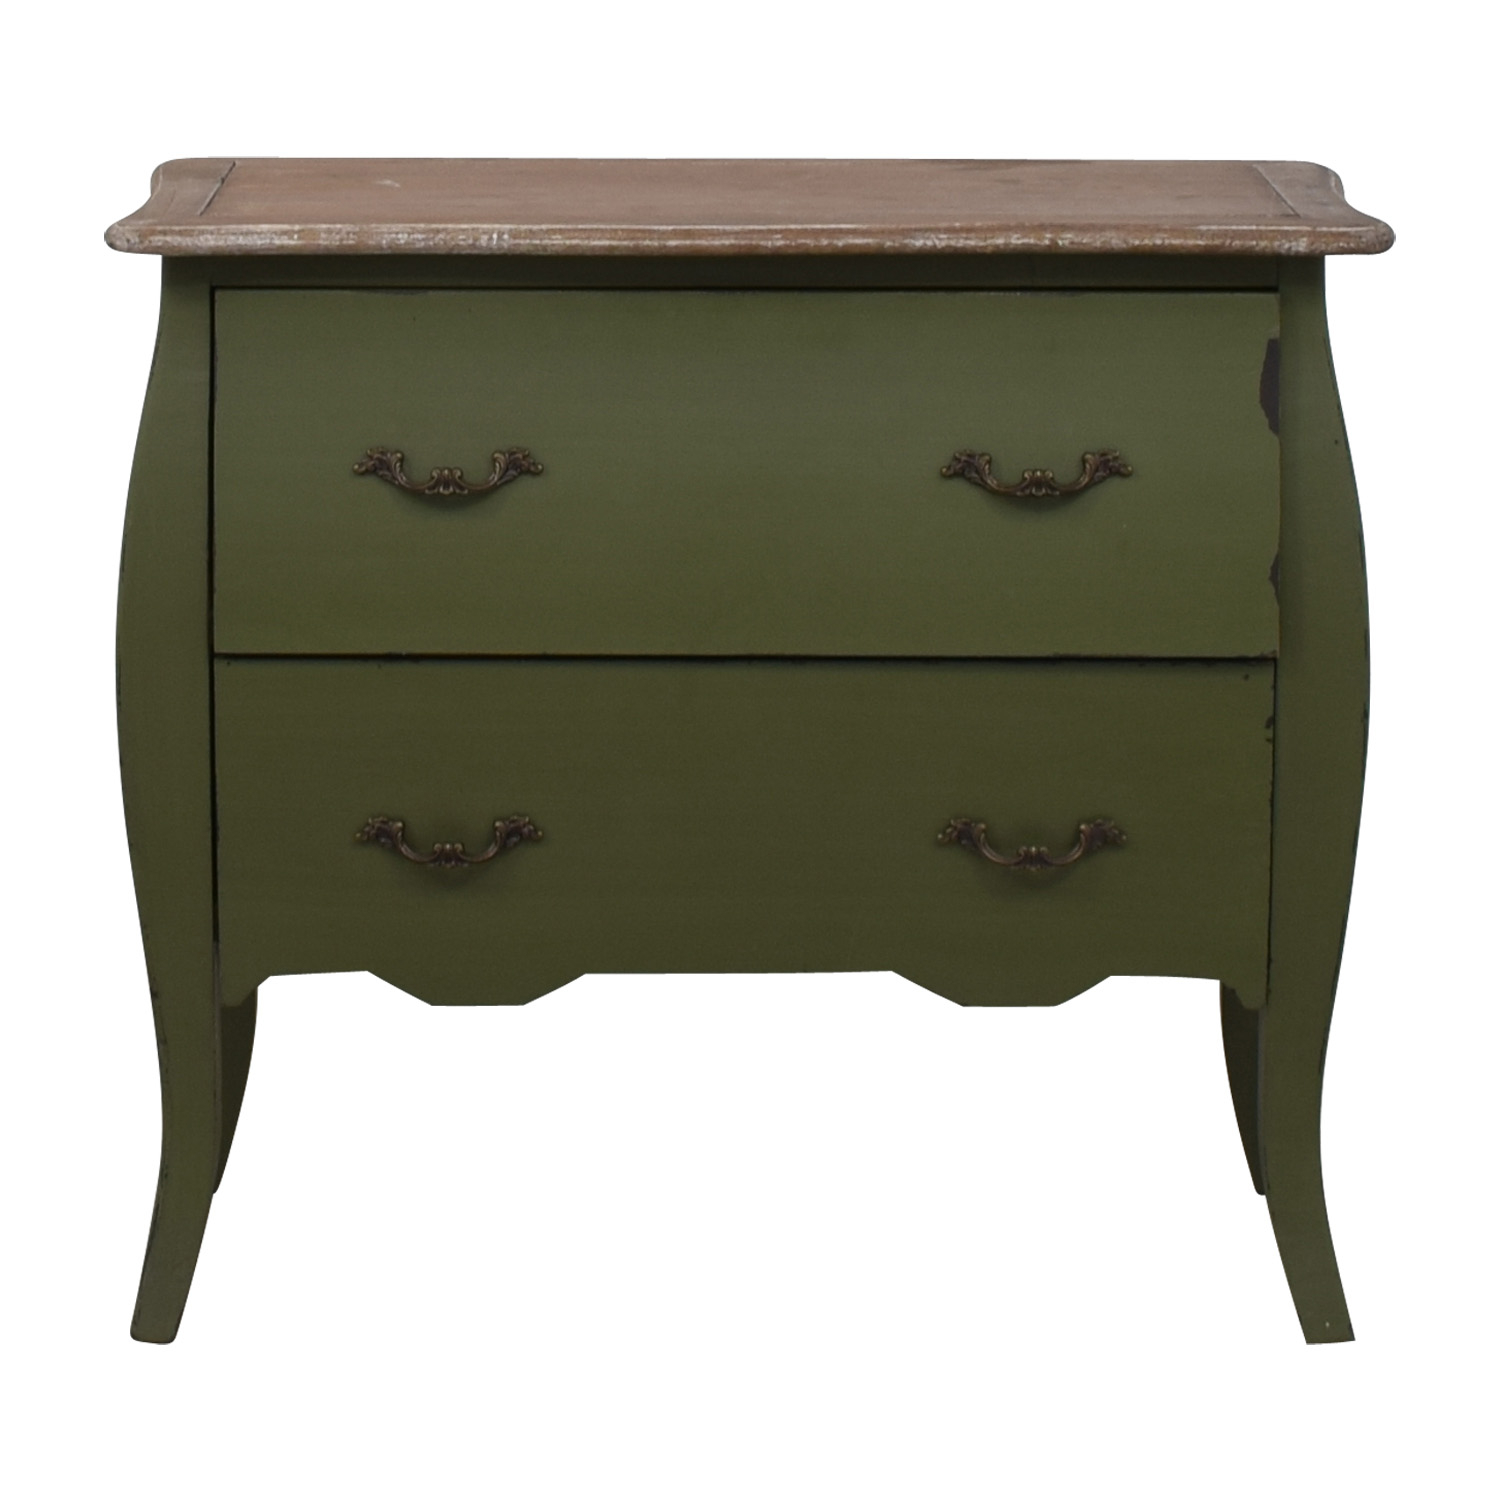 54% OFF   HomeGoods HomeGoods Green Two Drawer Accent Table / Tables